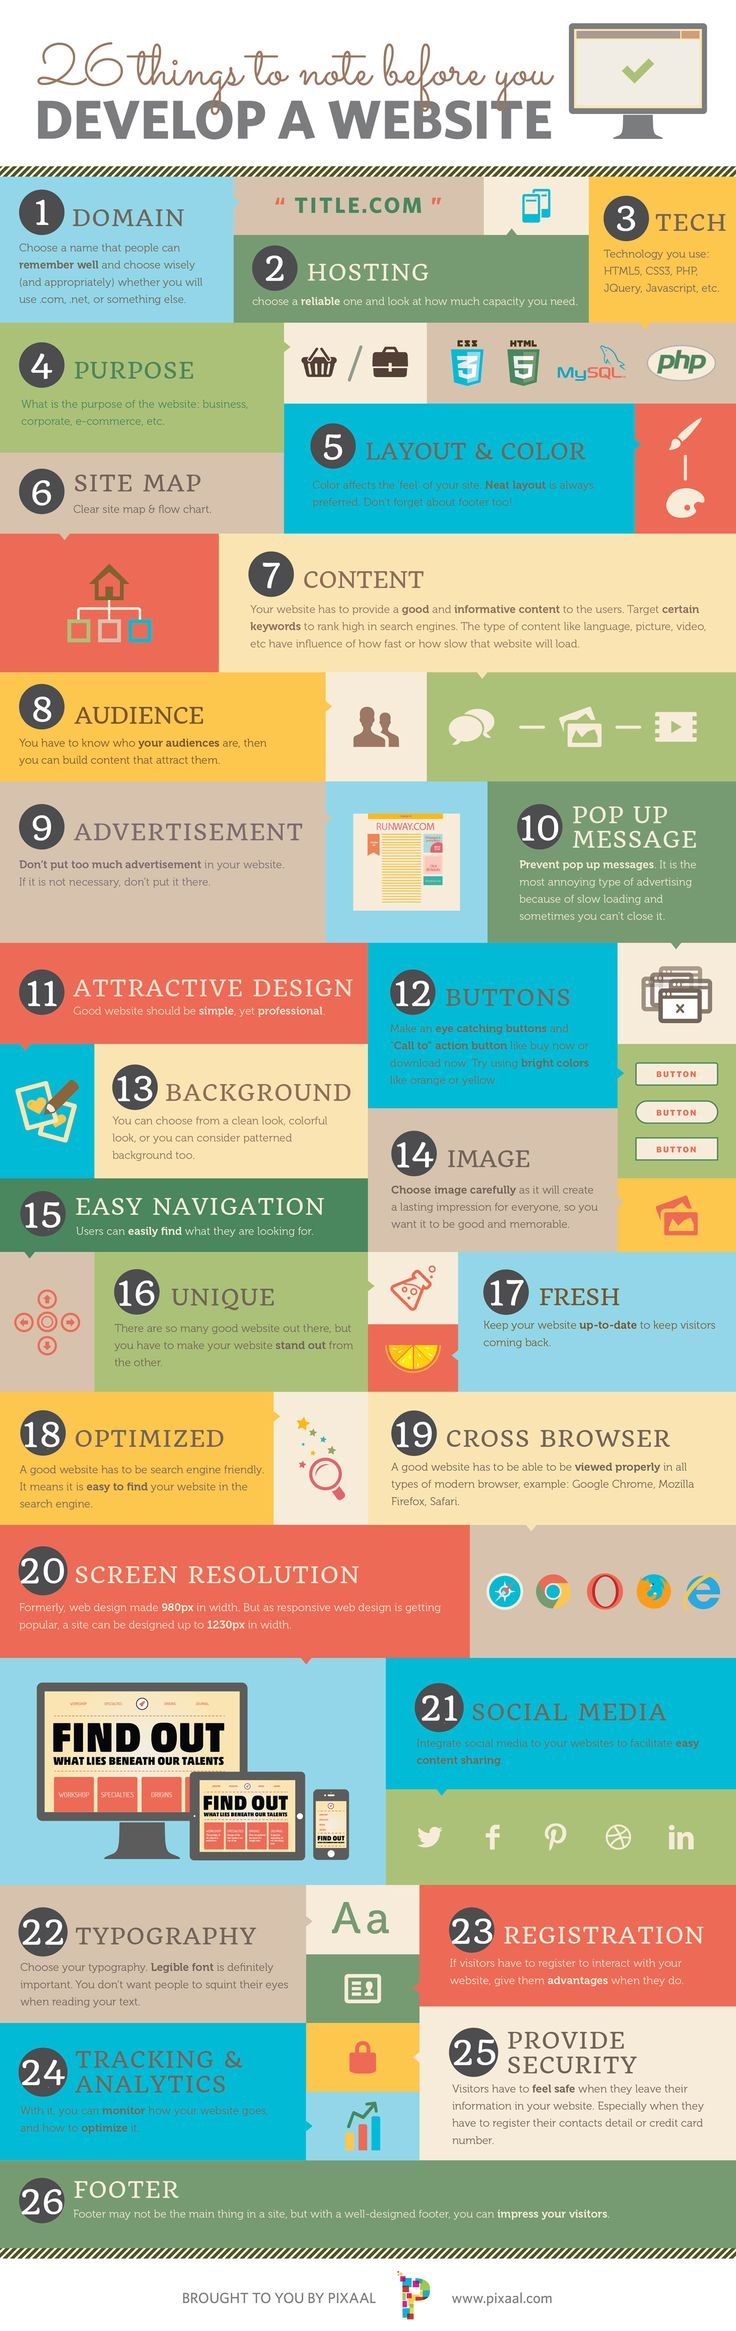 26 things to note before you develop a website. {i know this already but always good to have a check list}